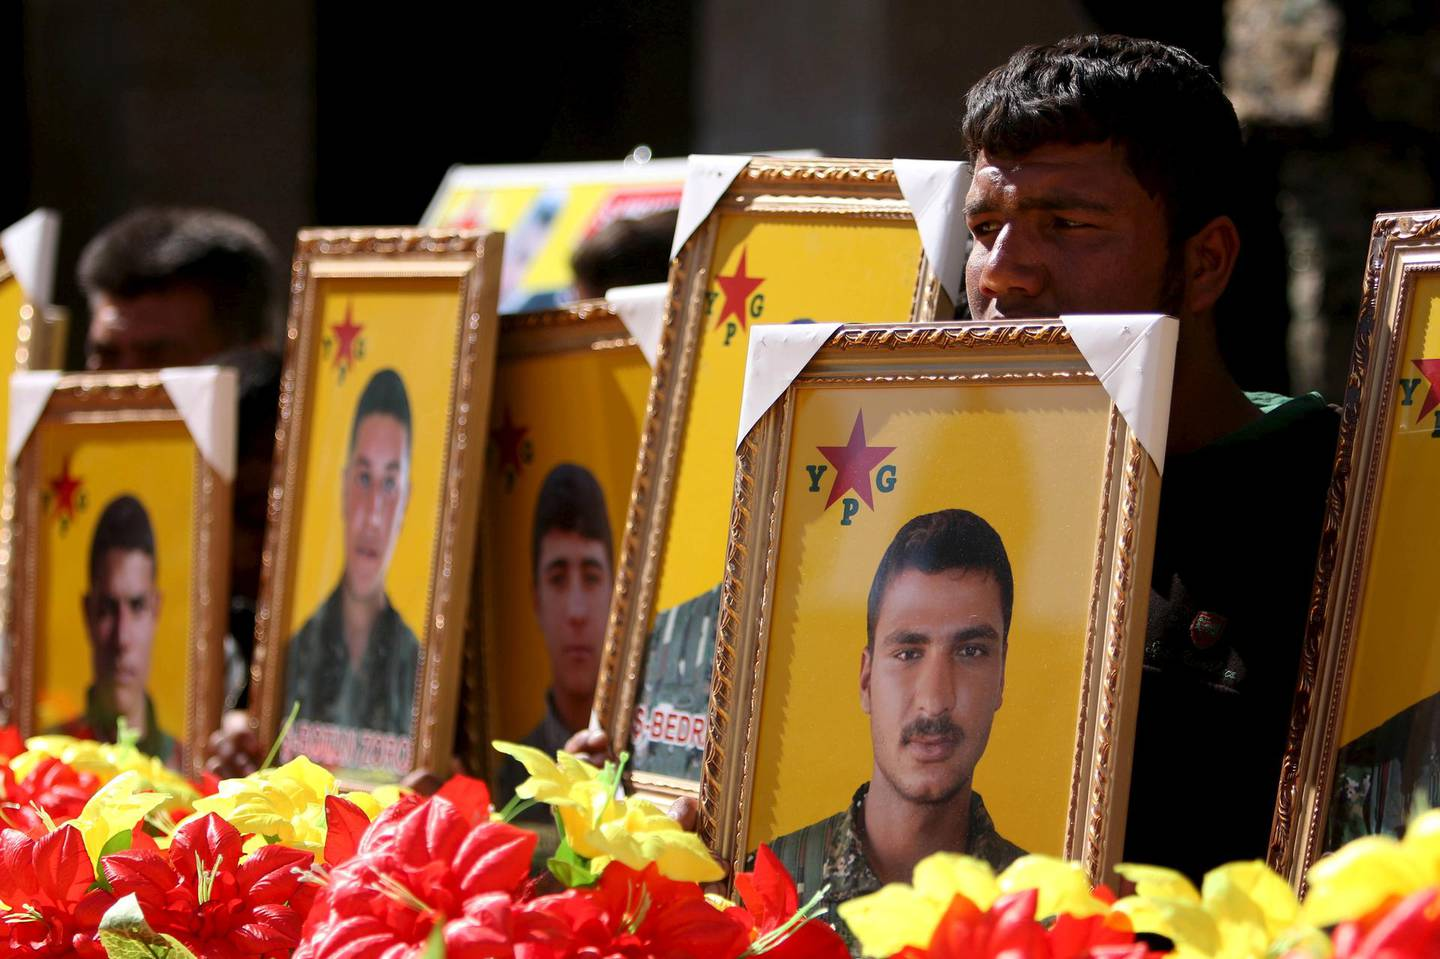 FILE PHOTO: Relatives carry pictures of fighters from the Kurdish People's Protection Units (YPG), who were killed when Islamic State militants attacked the town of Tel Abyad on the Turkish border at the weekend, during their funeral procession at Ras al-Ain city, in Hasakah province,  Syria March 2, 2016. REUTERS/Rodi Said/File Photo